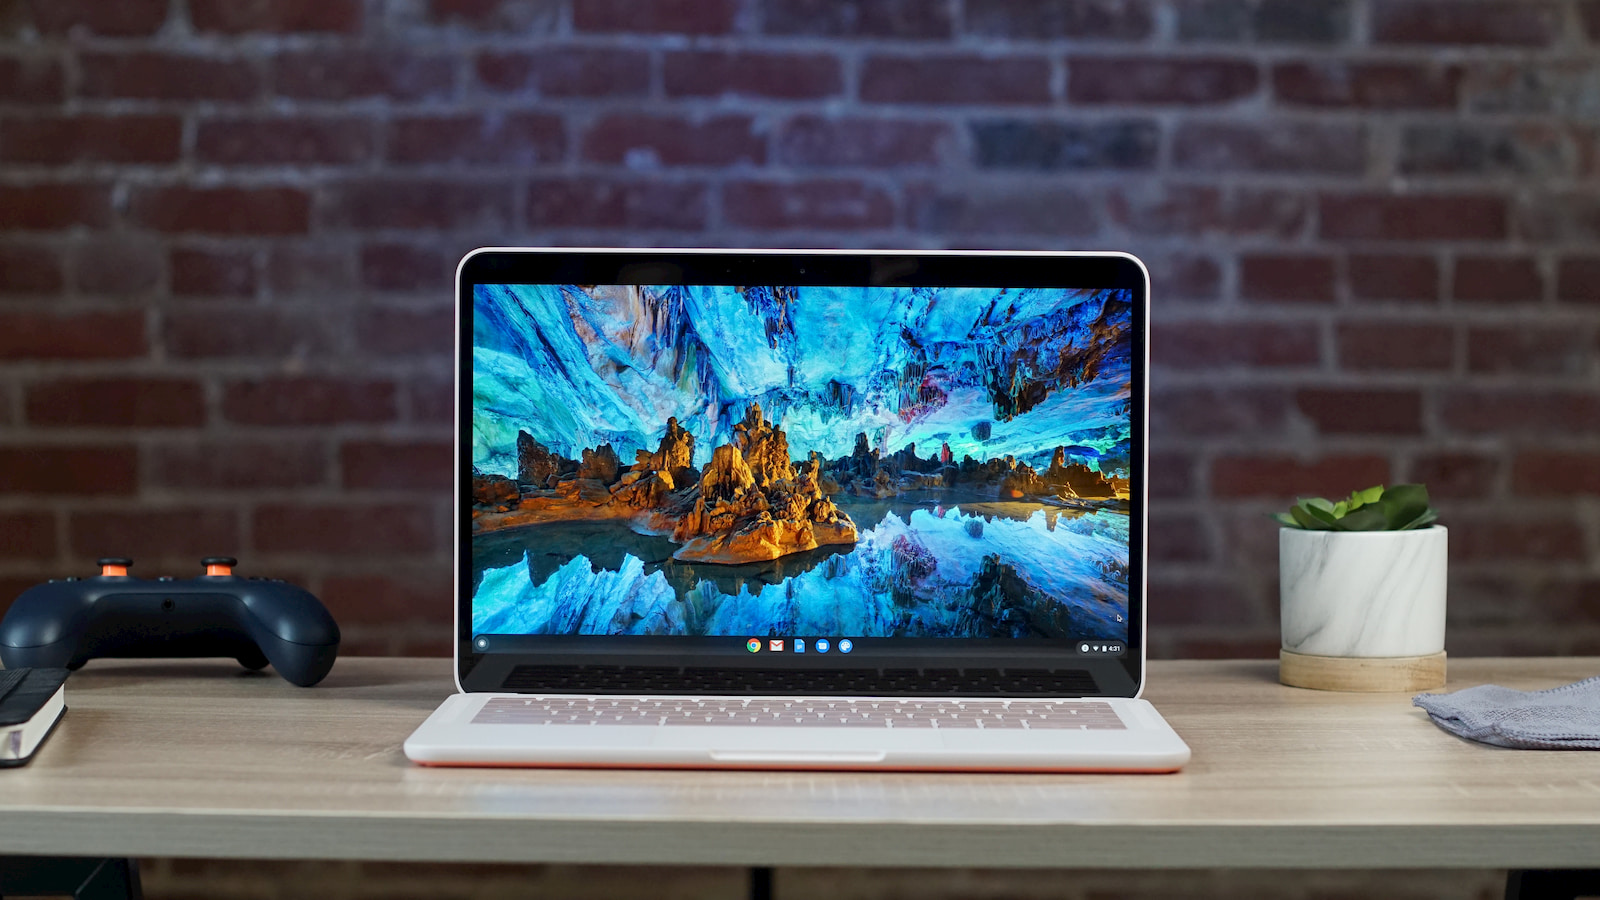 Core m3 Not Pink Pixelbook Go finally appears for preorder